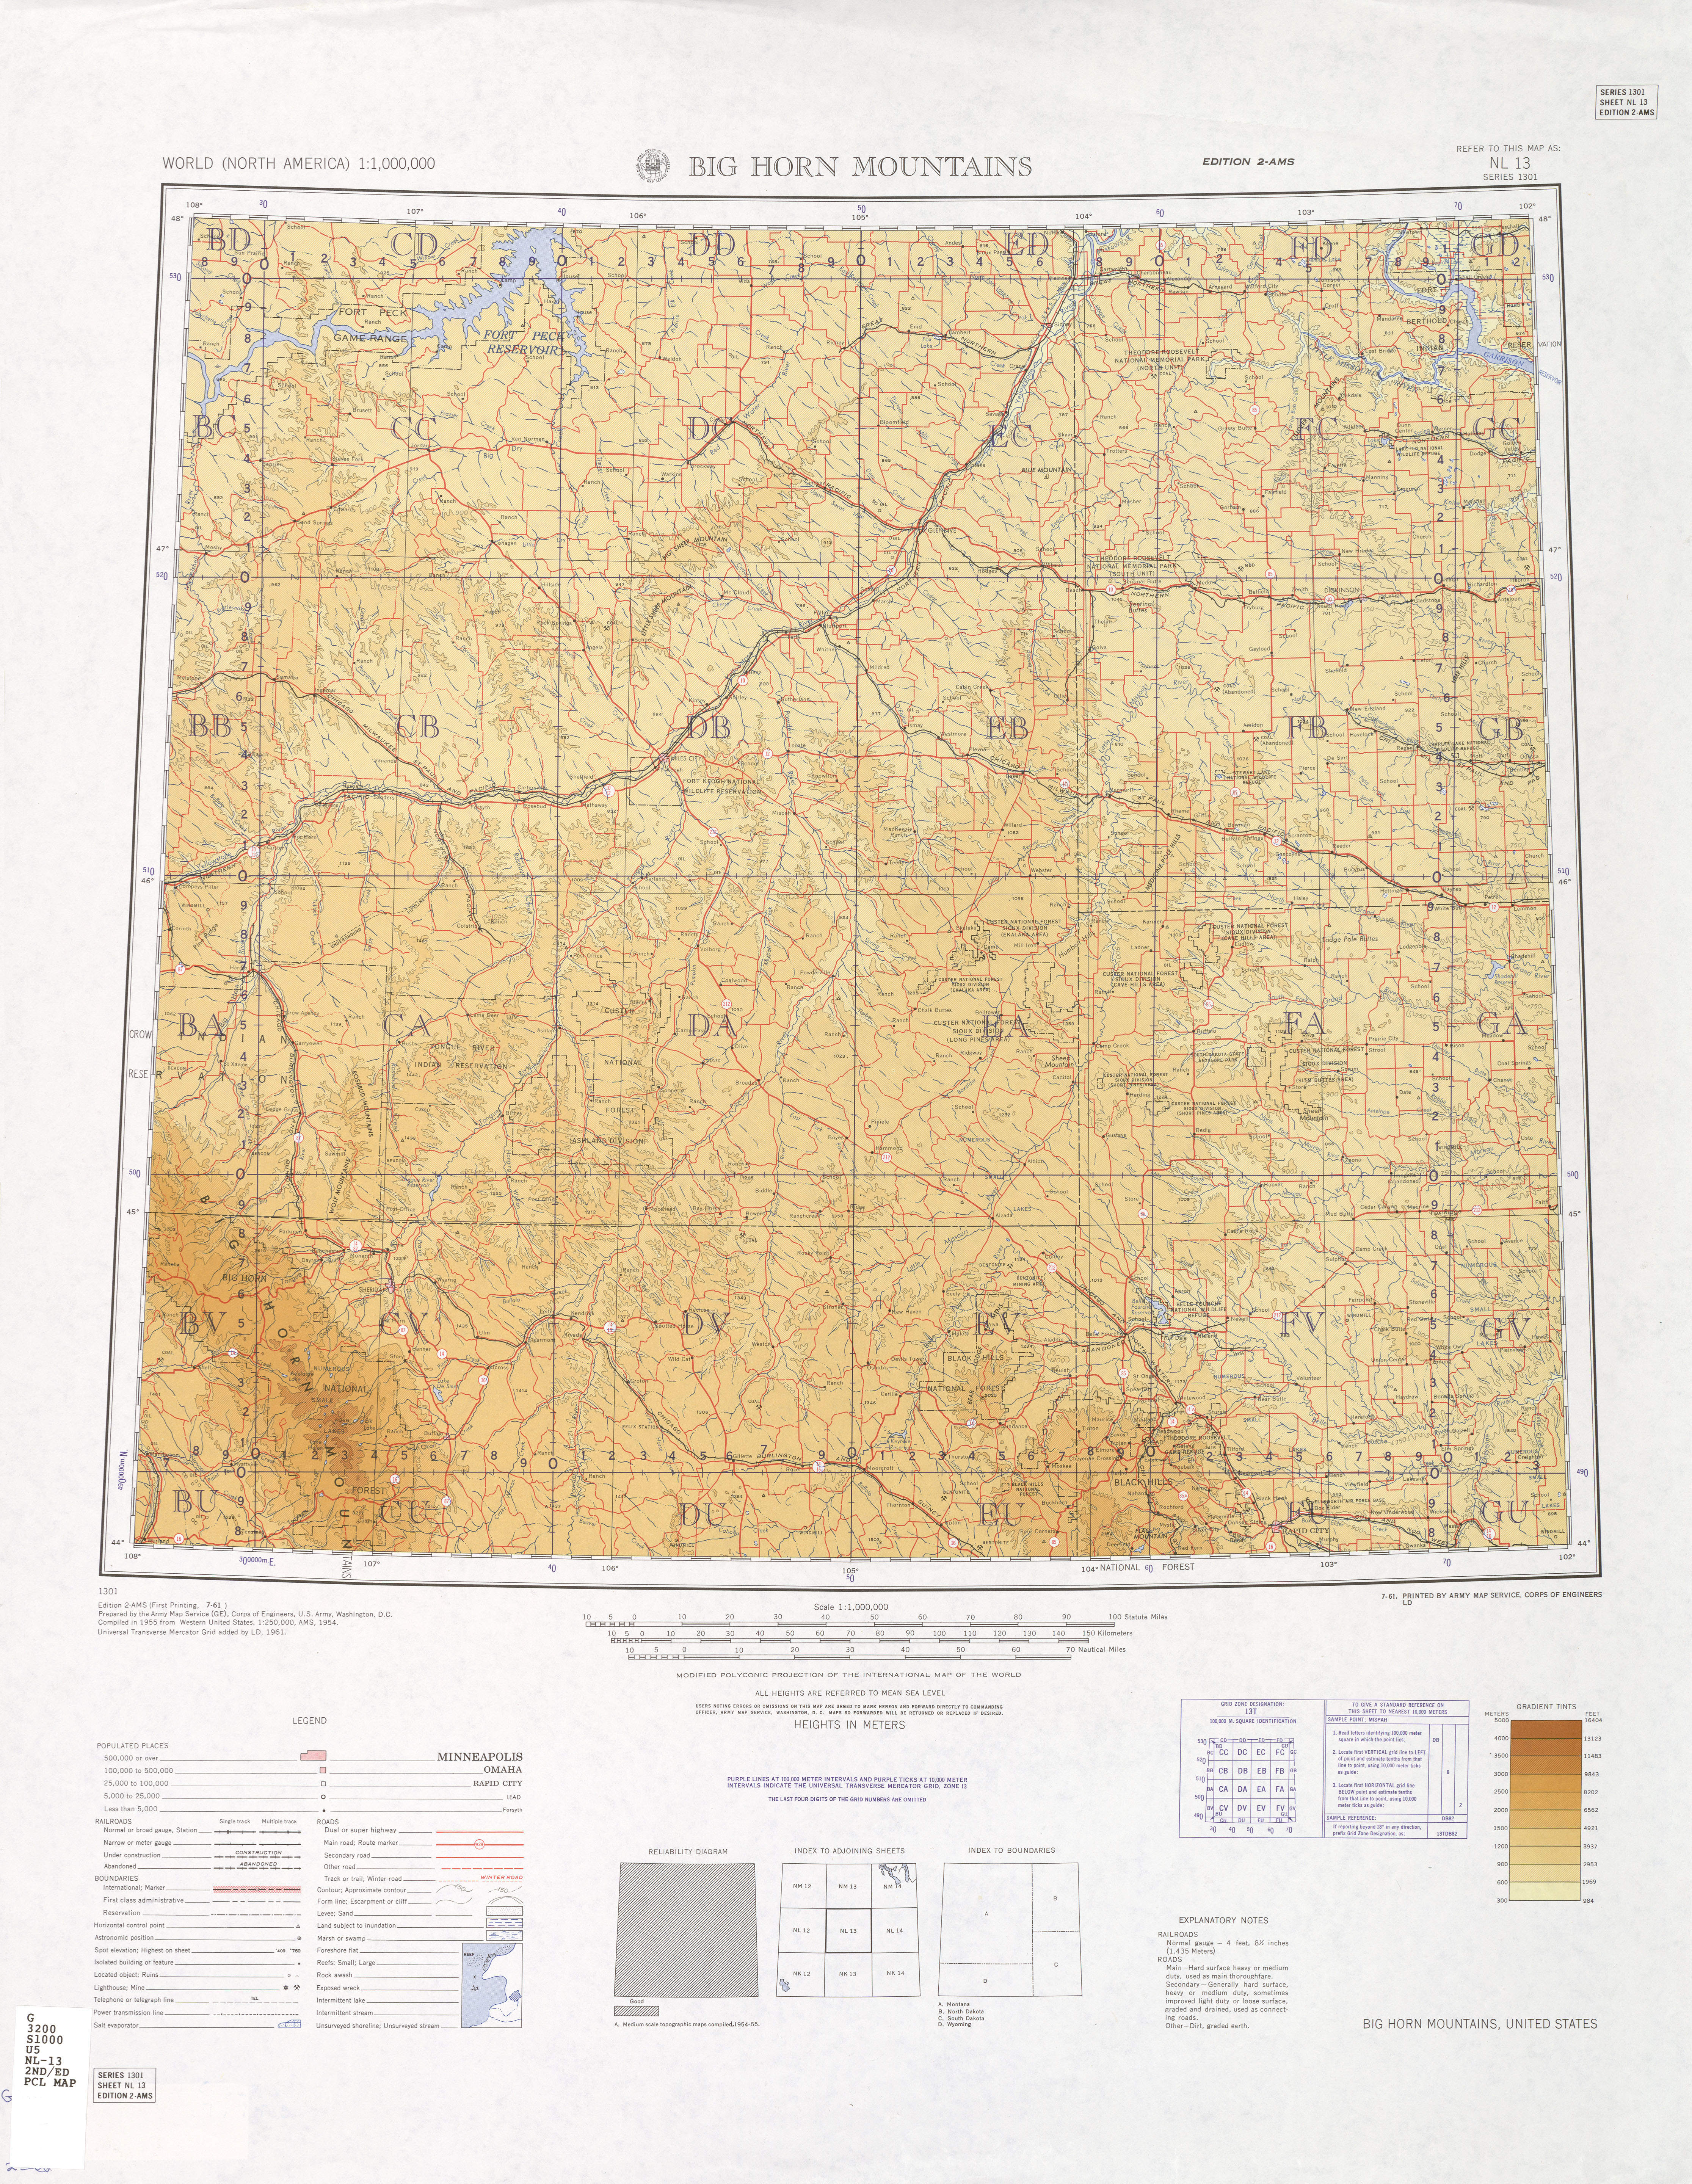 Big Horn Mountains Map View Online - Bighorn mountains map us